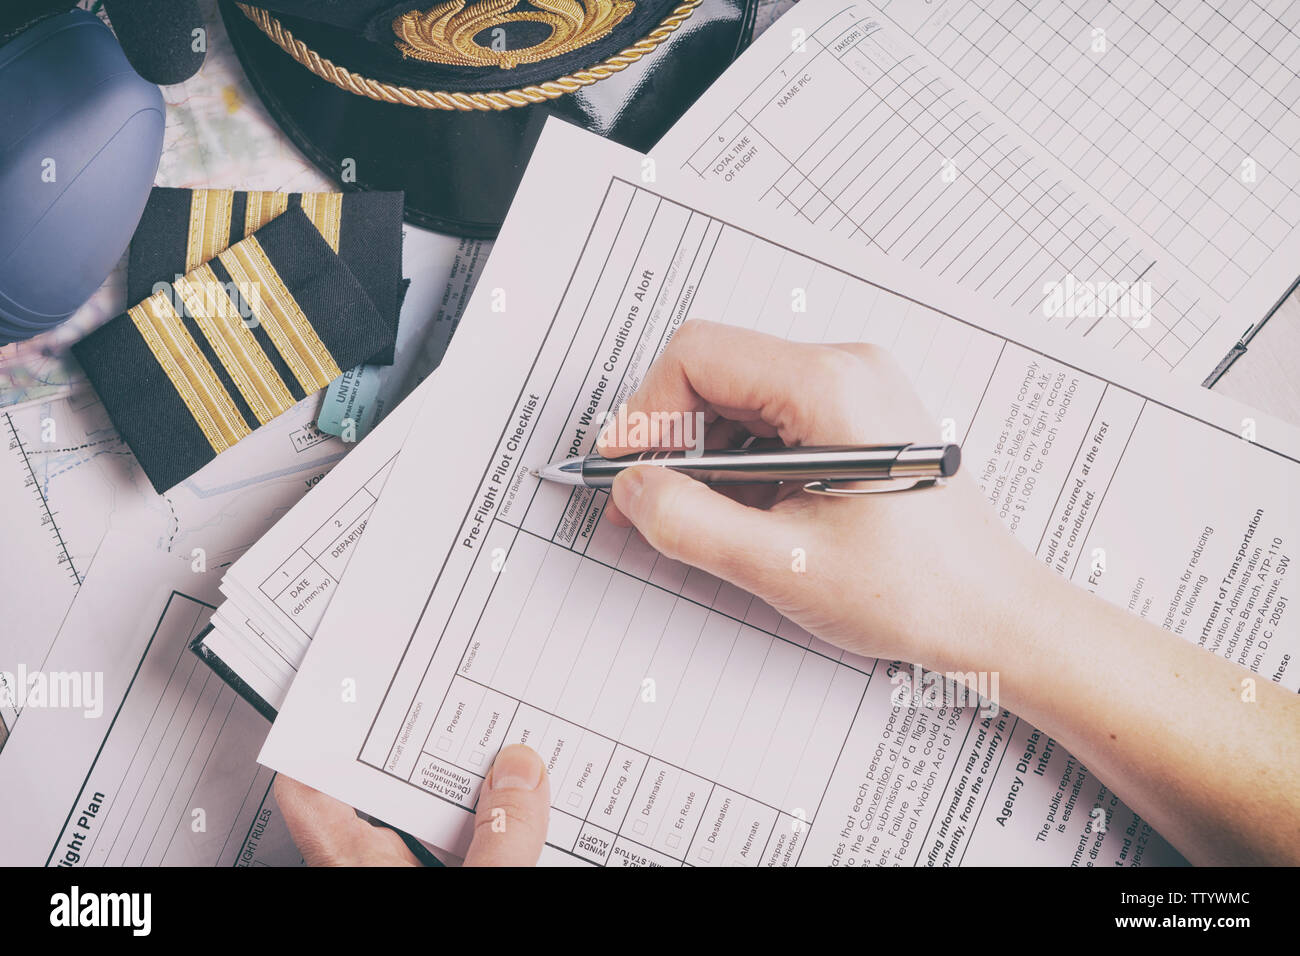 Checklist Airplane Stock Photos & Checklist Airplane Stock